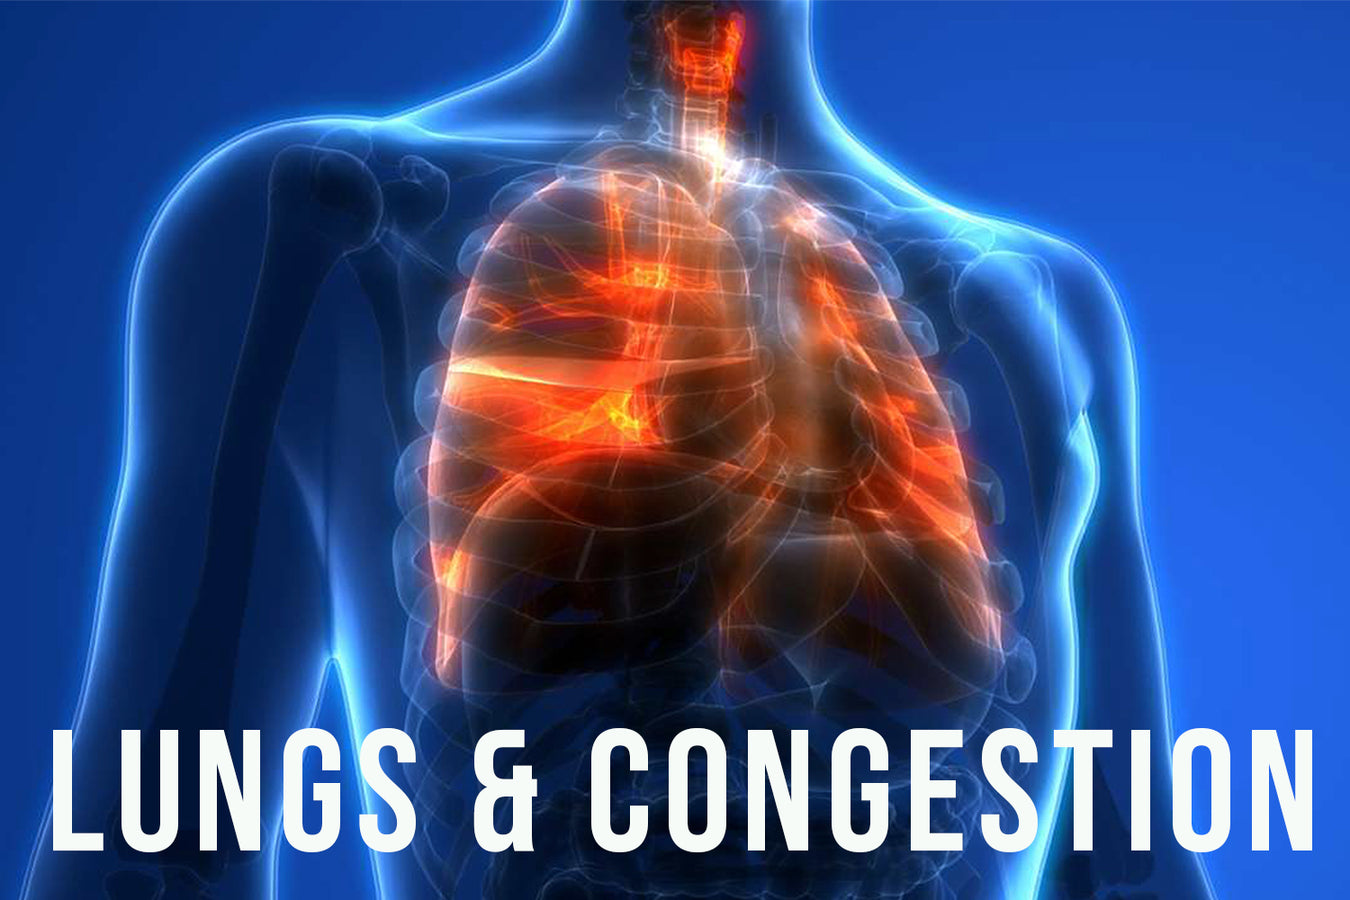 LUNGS & CONGESTION